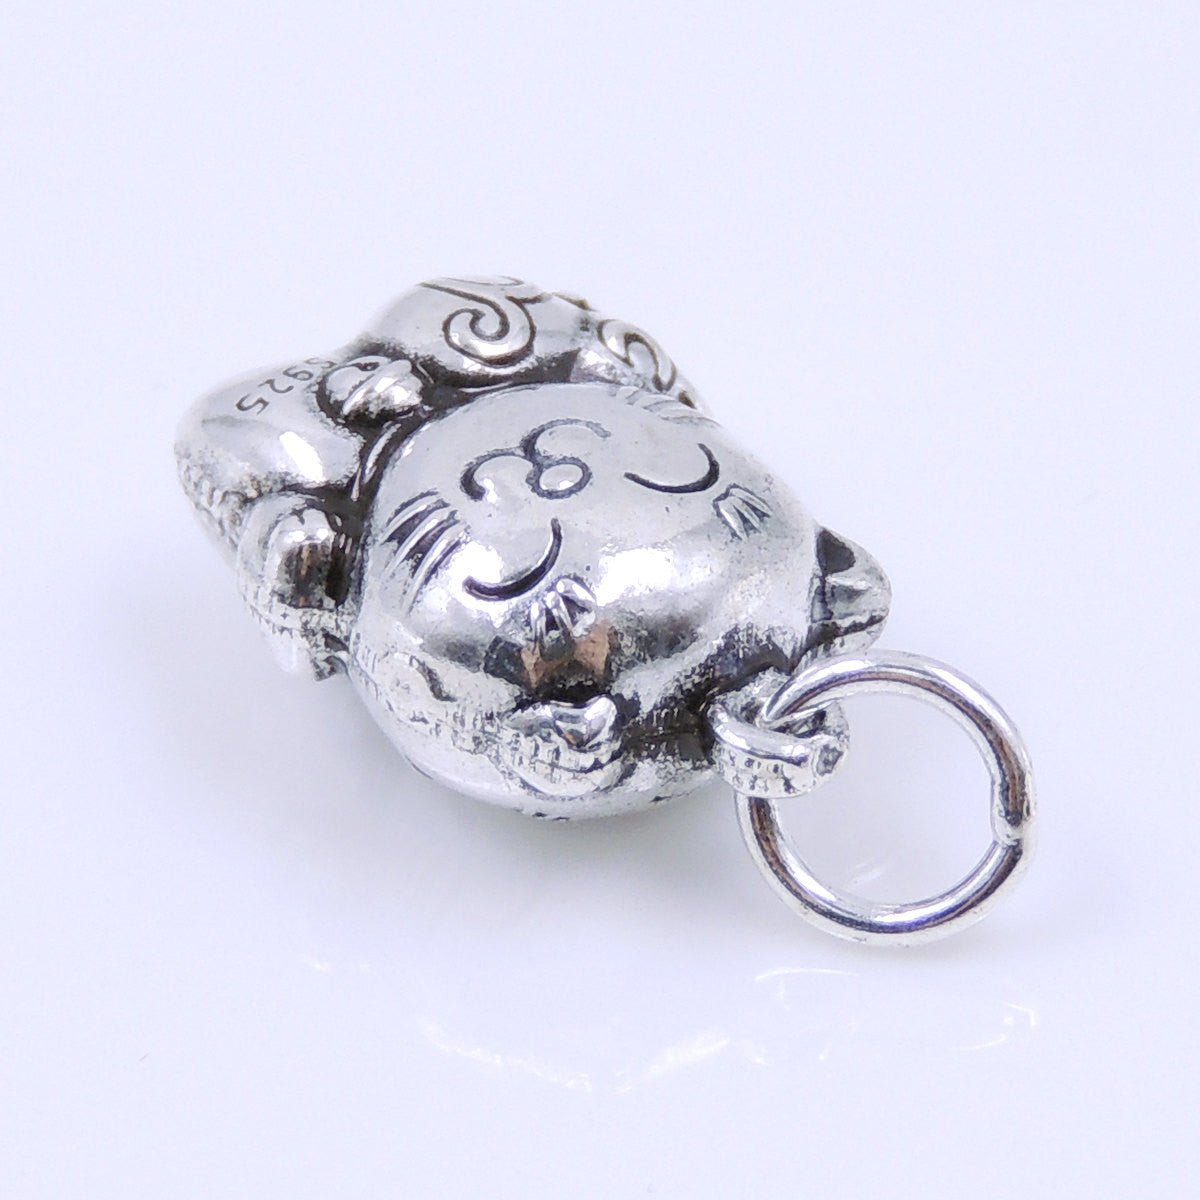 2 PCS Lucky Cat Pendants with Hulu Gourd Protection Plant - S925 Sterling Silver WSP250Ex2